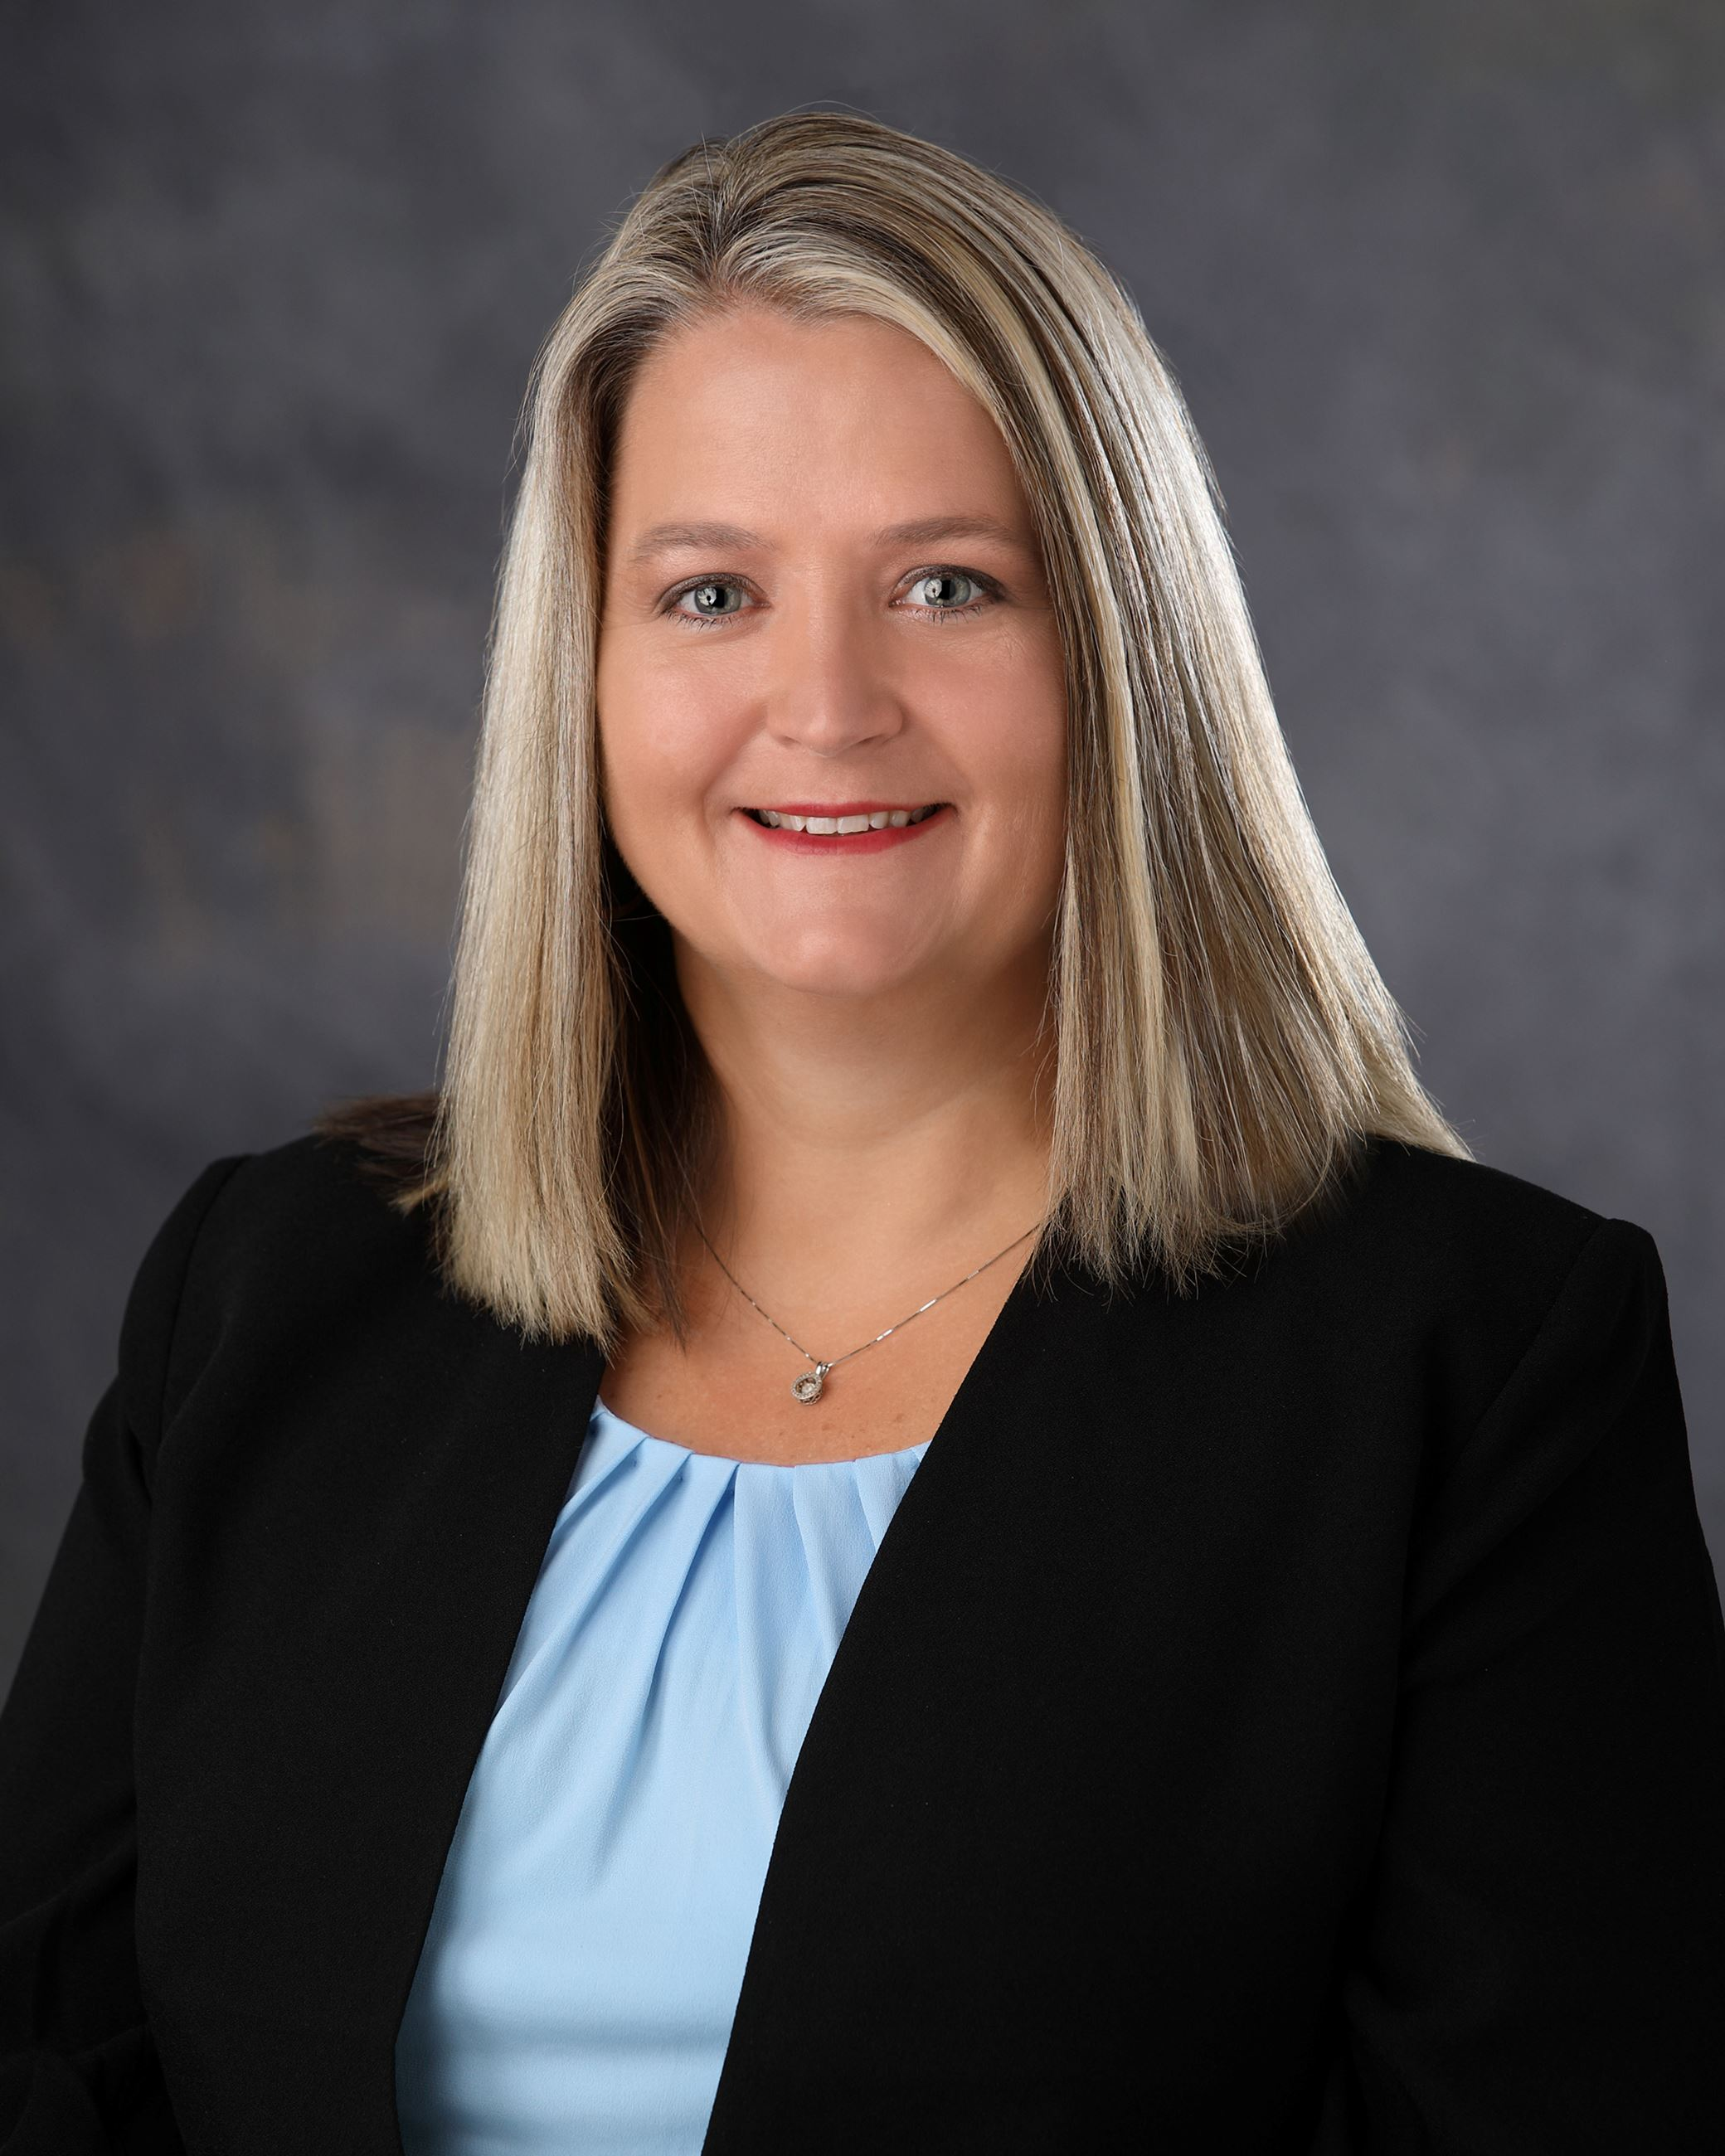 Image of Crissy Bublitz, Human Resources Director